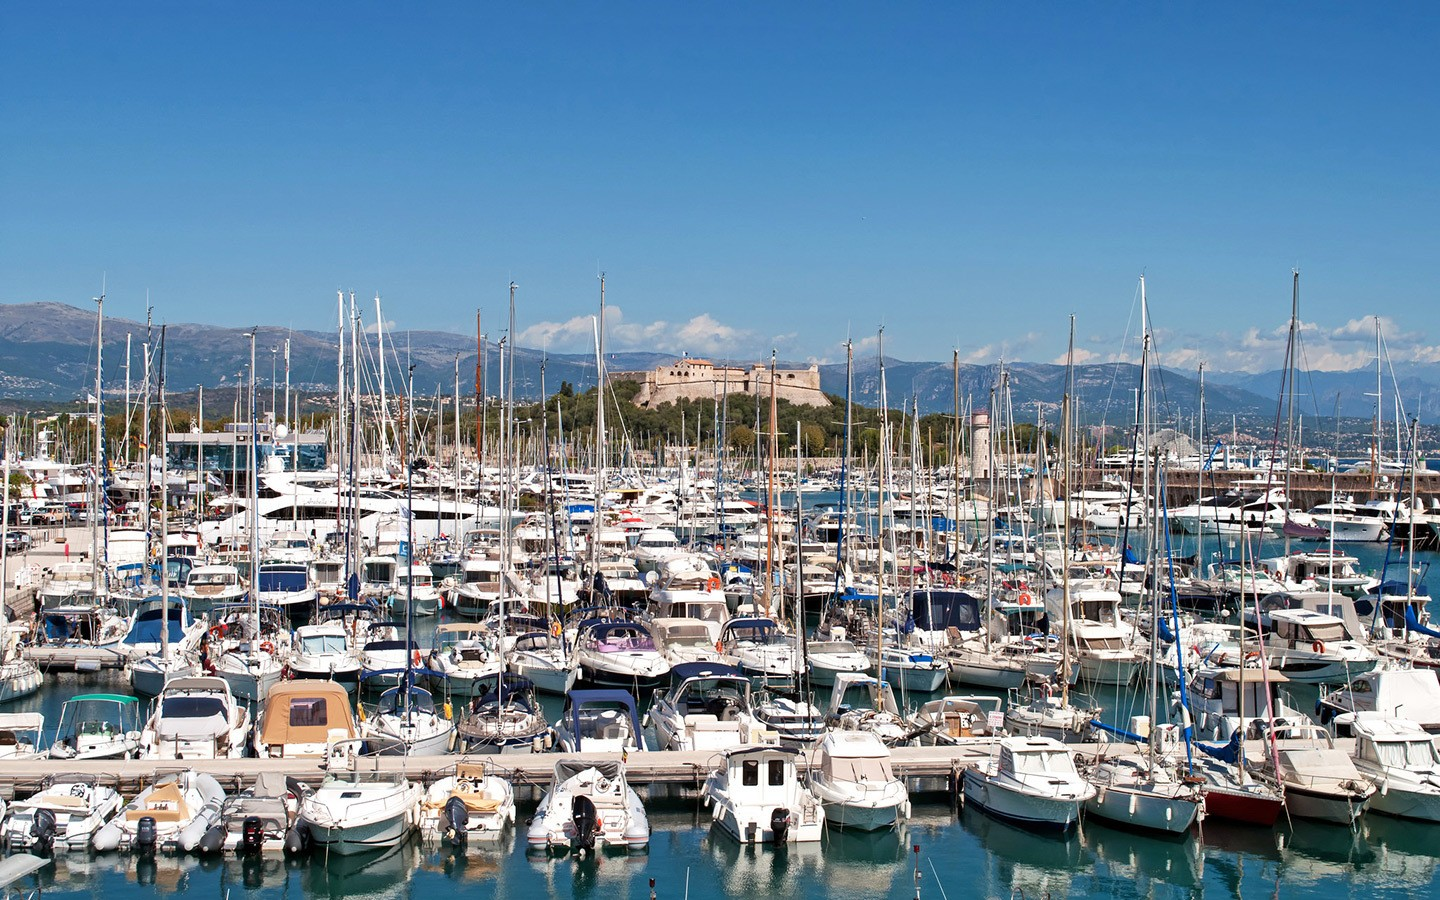 Port Vauban marina in Antibes, South of France